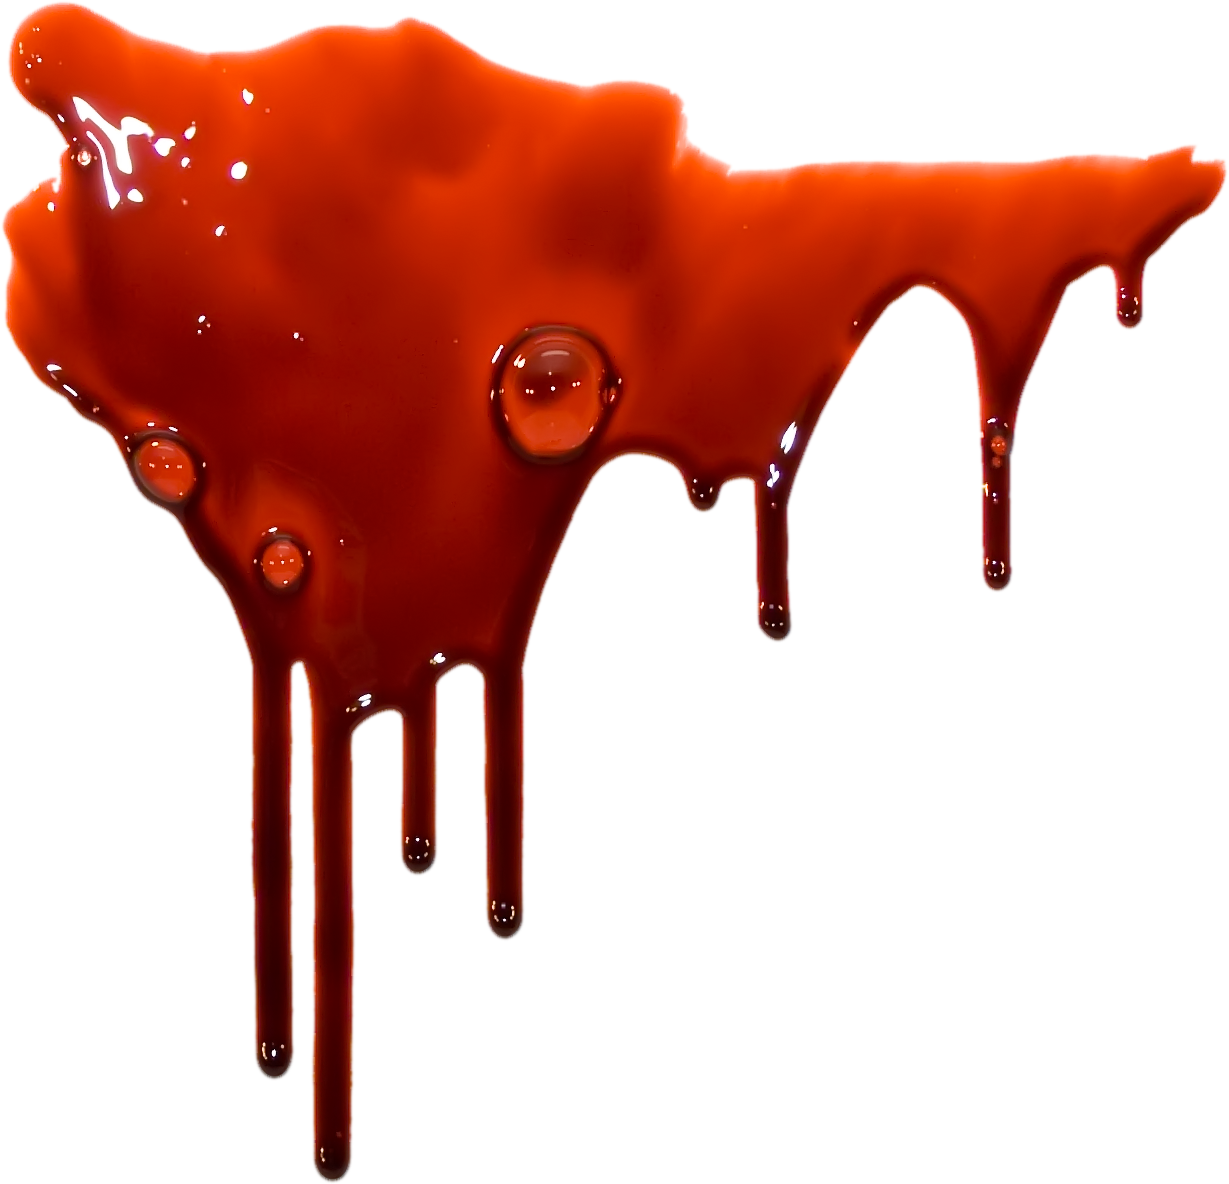 Download this high resolution Blood PNG Image